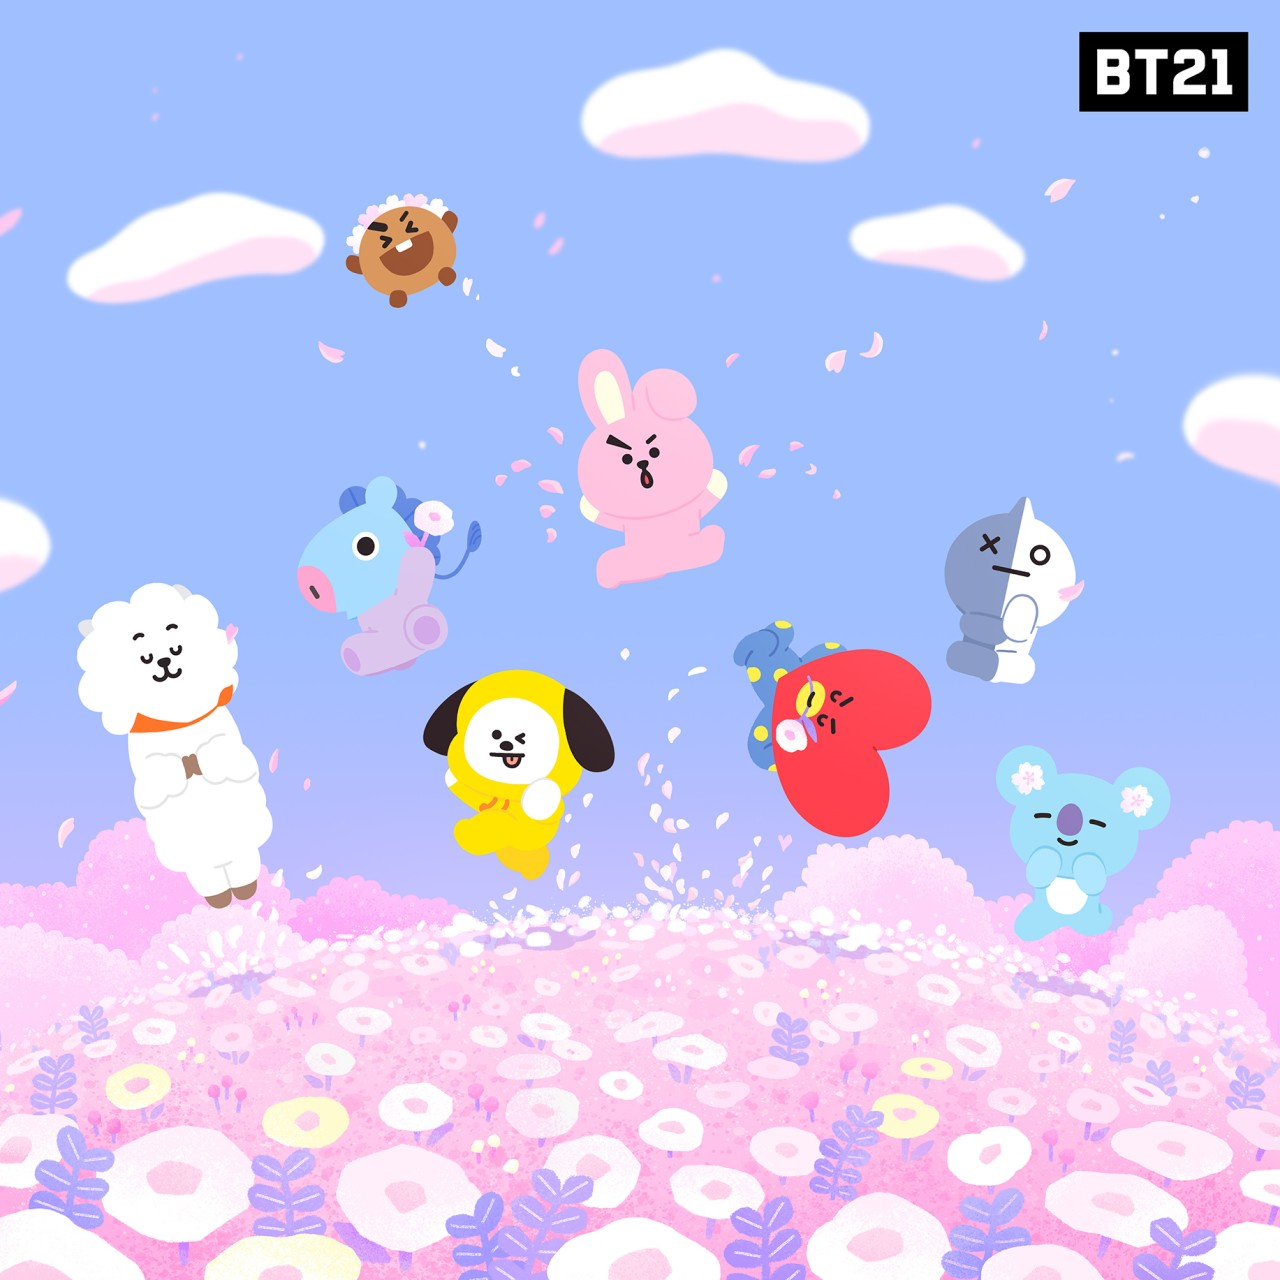 LINEFRIENDS PIC GIFs pics and wallpapers by LINE friends